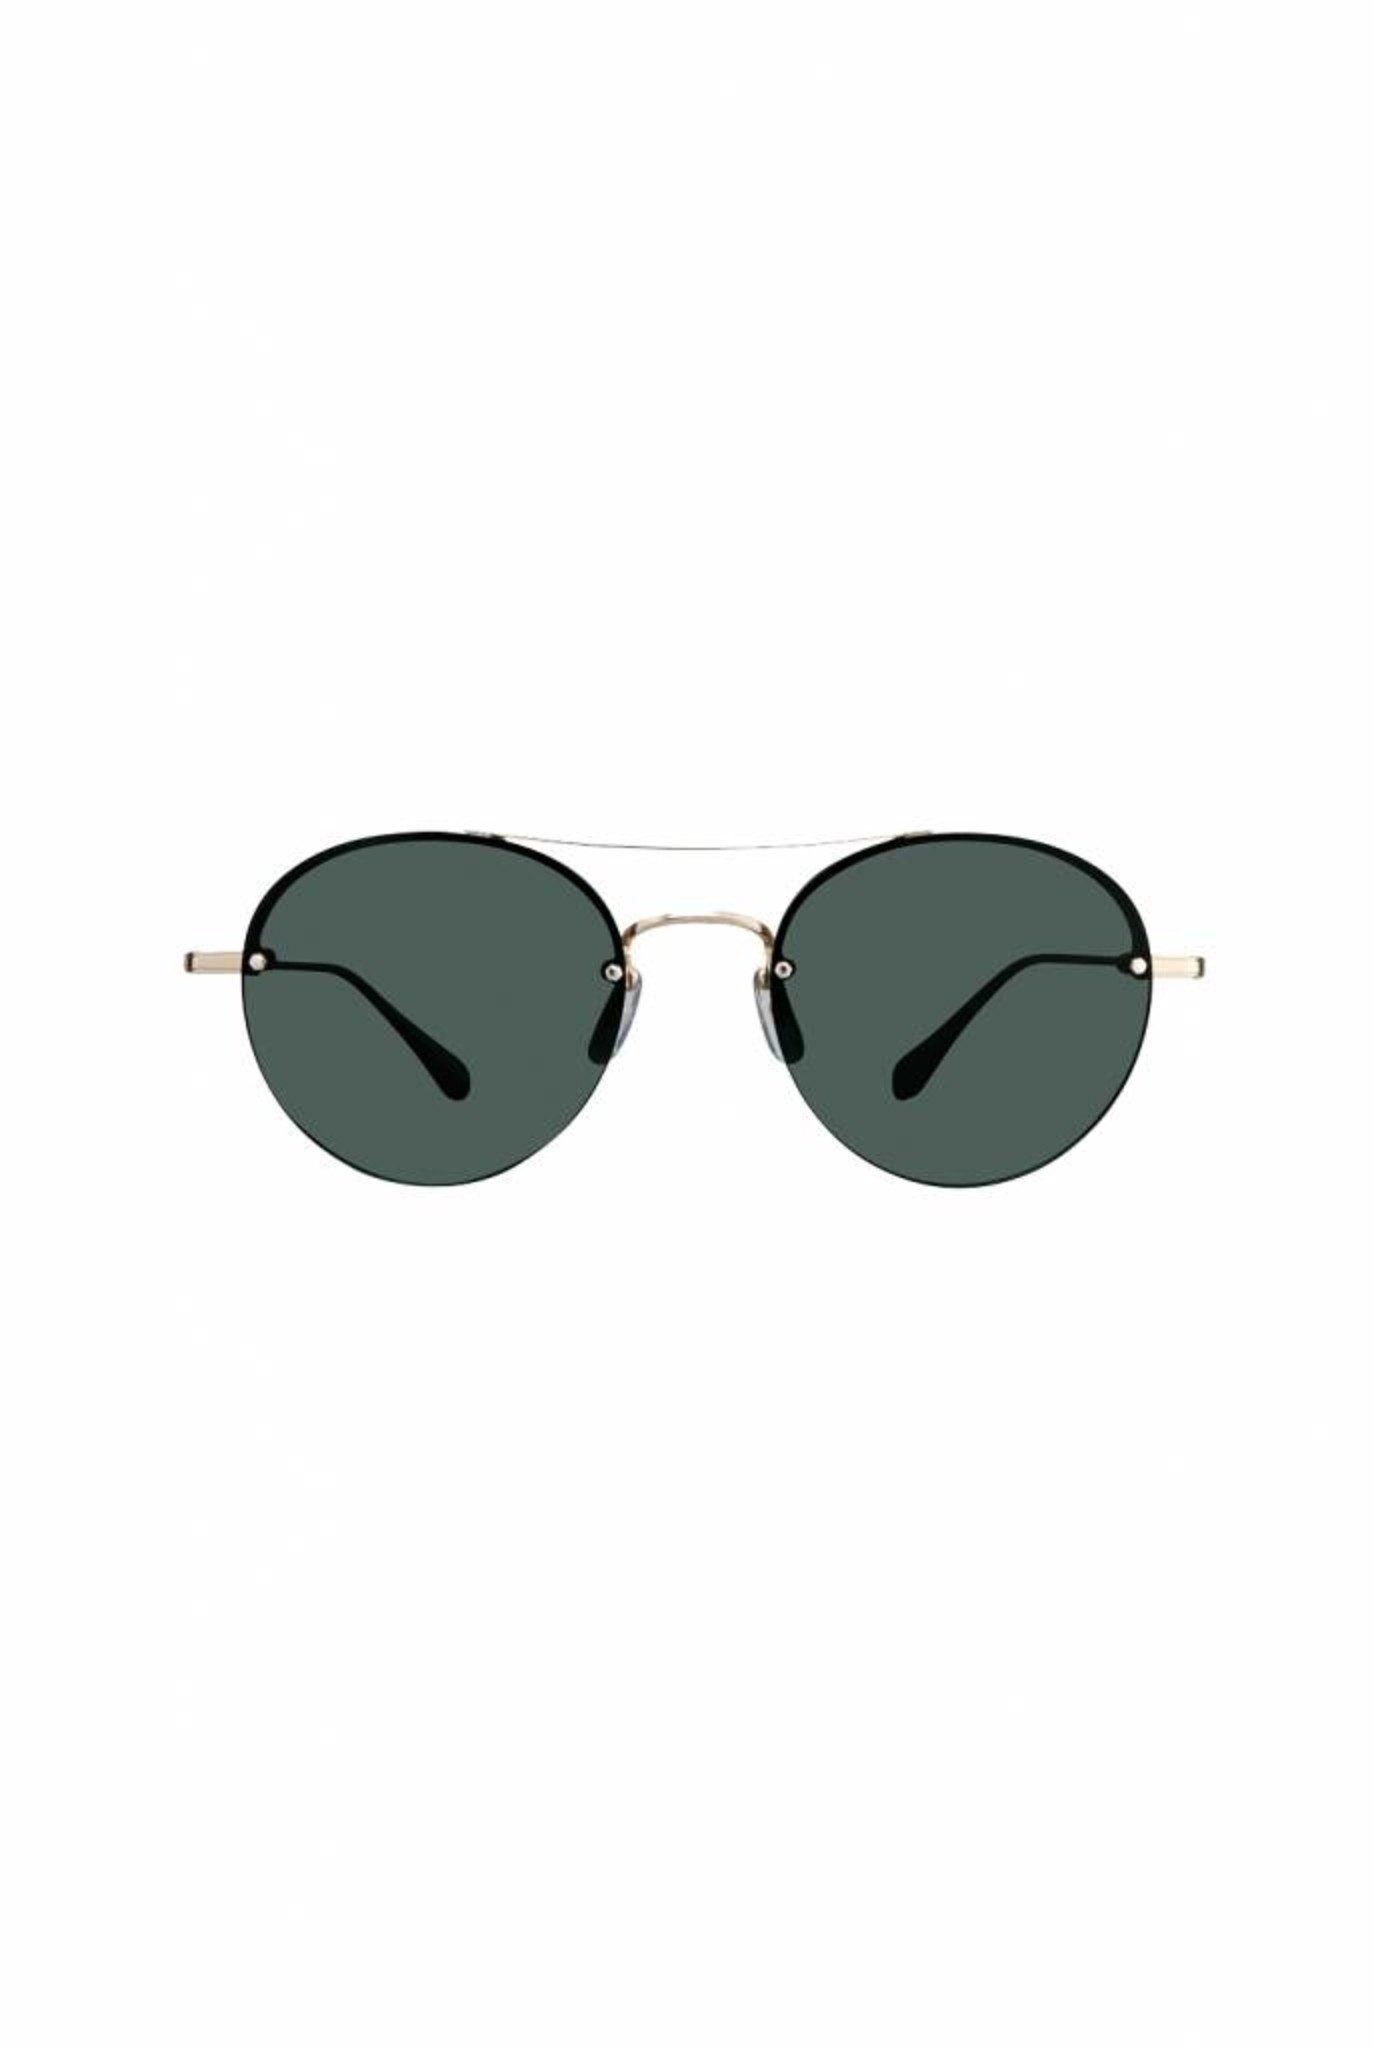 Beaumont sunglasses Gold Hazel